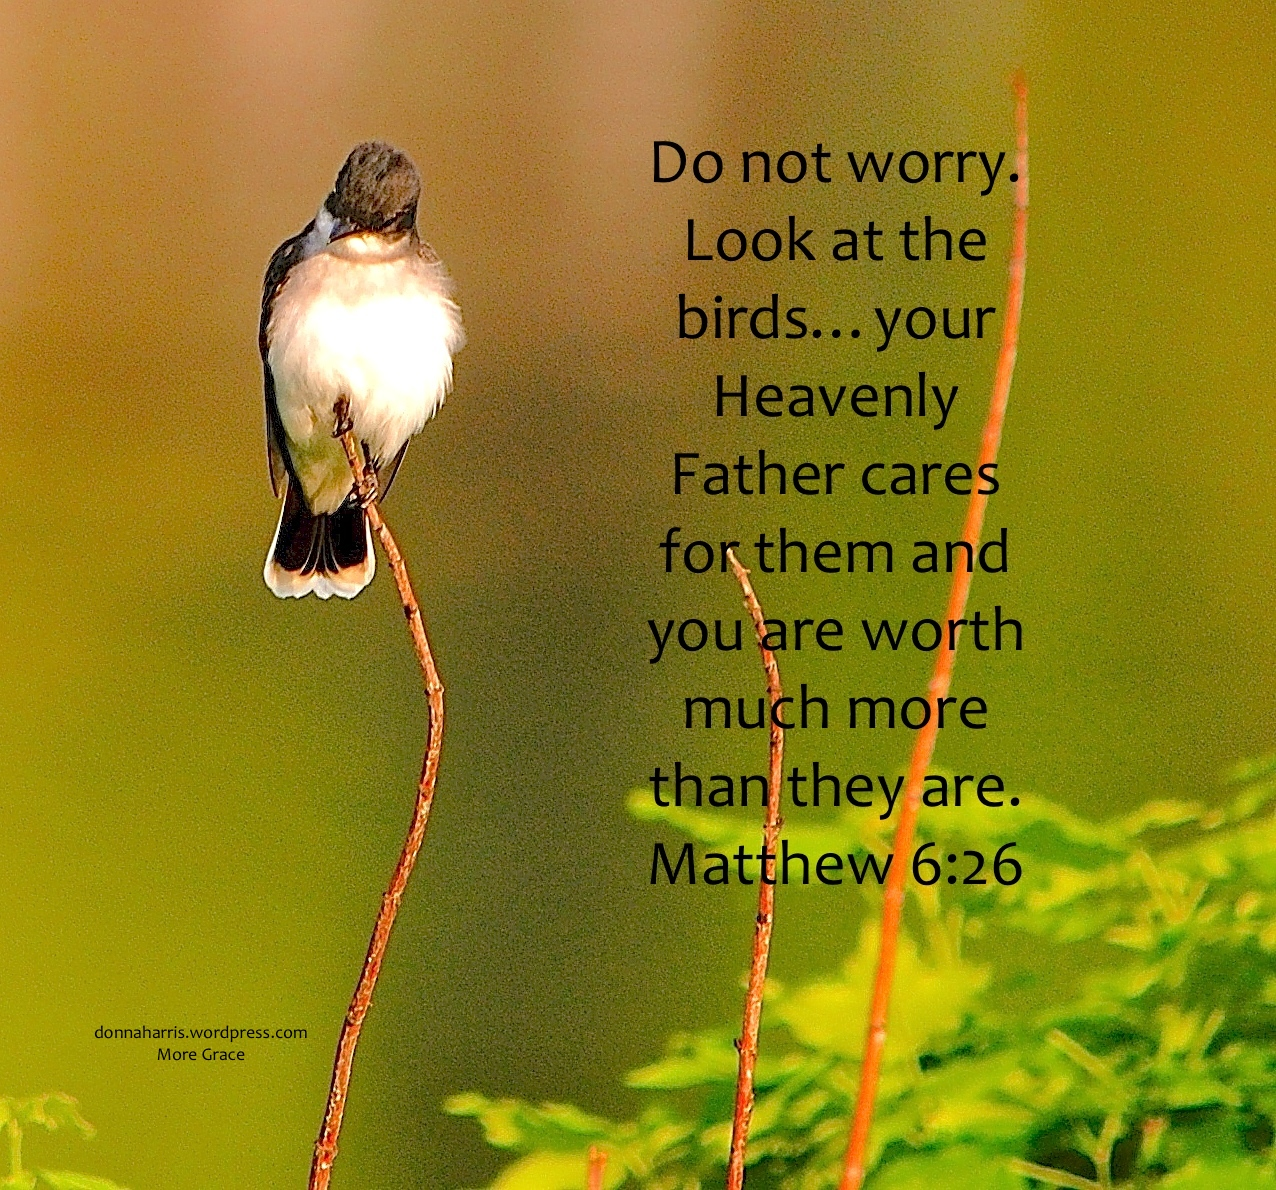 Worry Dethrones God Sunday Respite